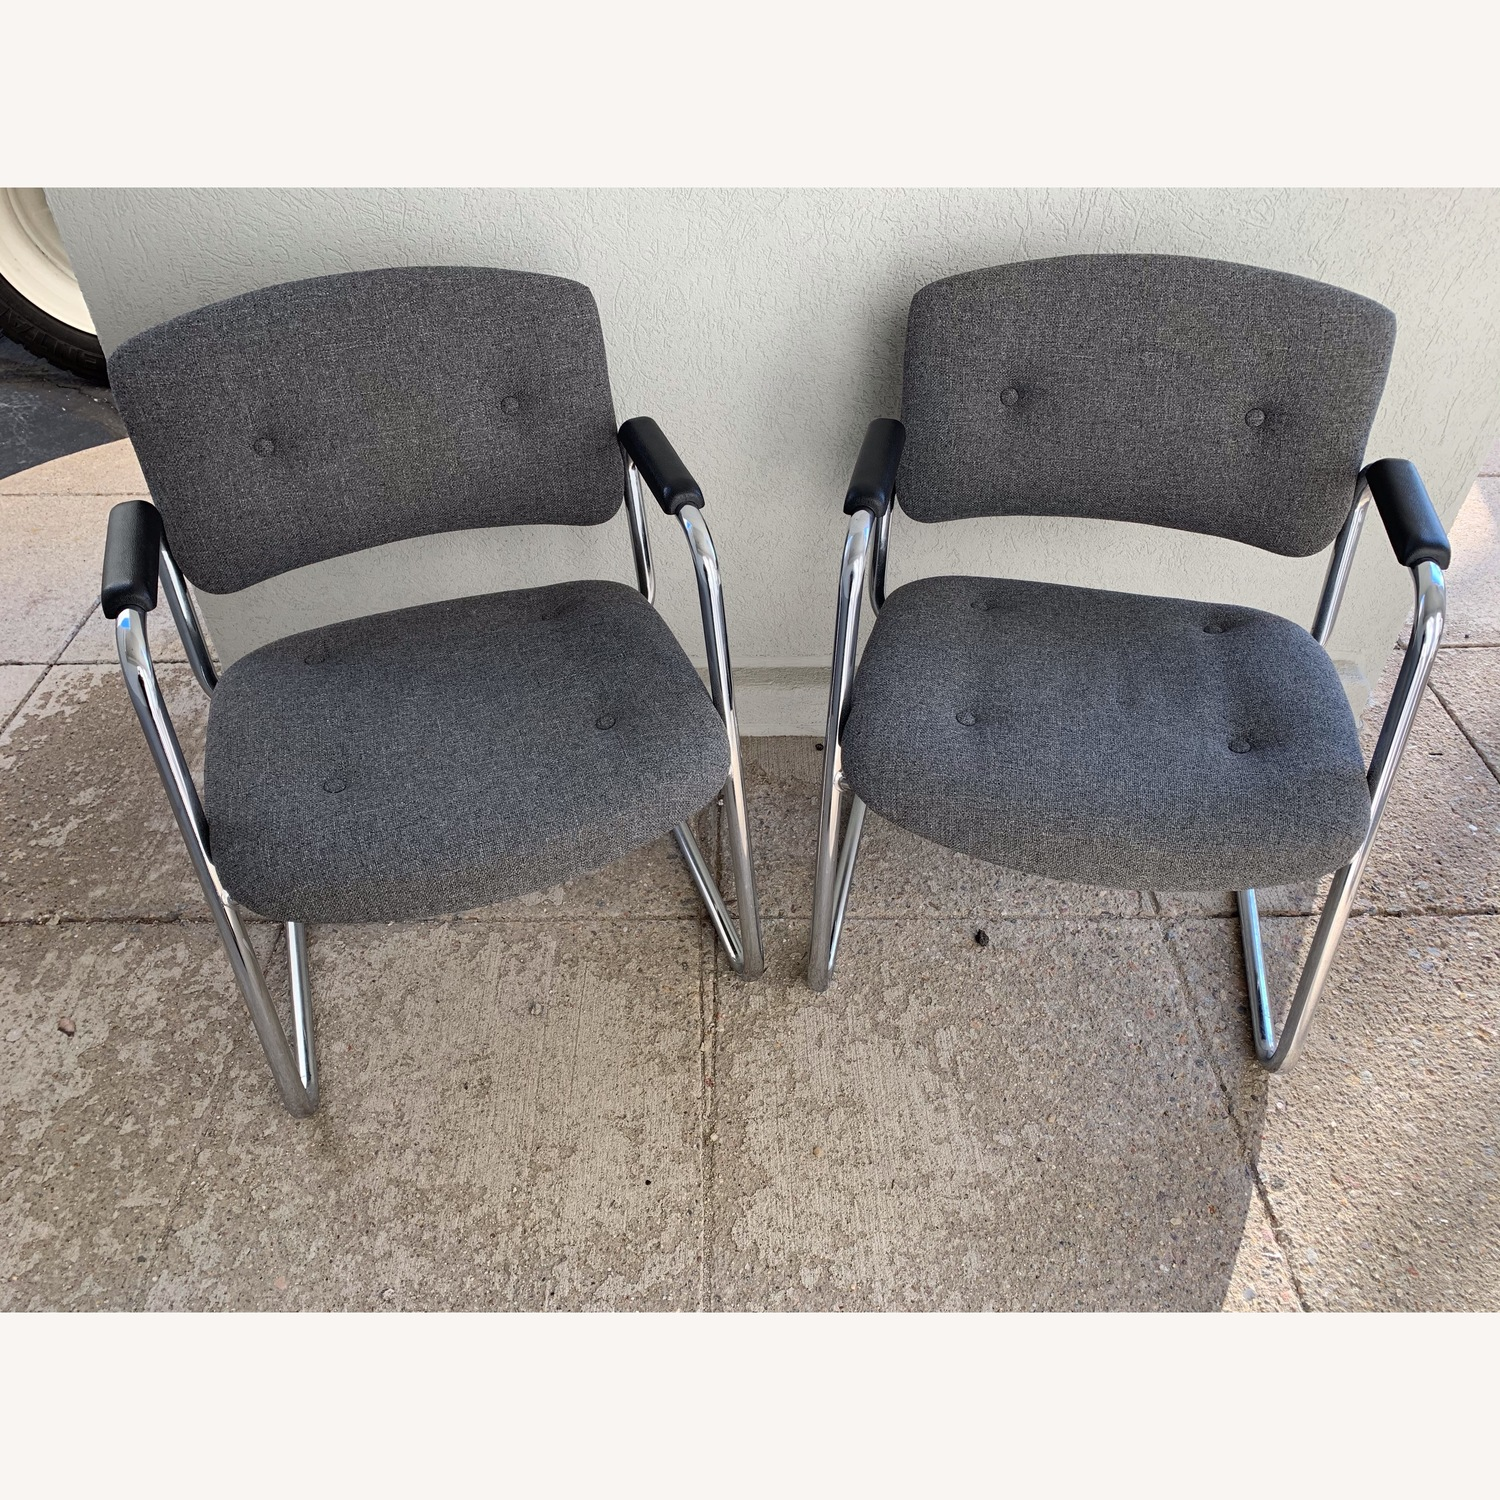 United Chair Company Cantilever Chairs - image-0